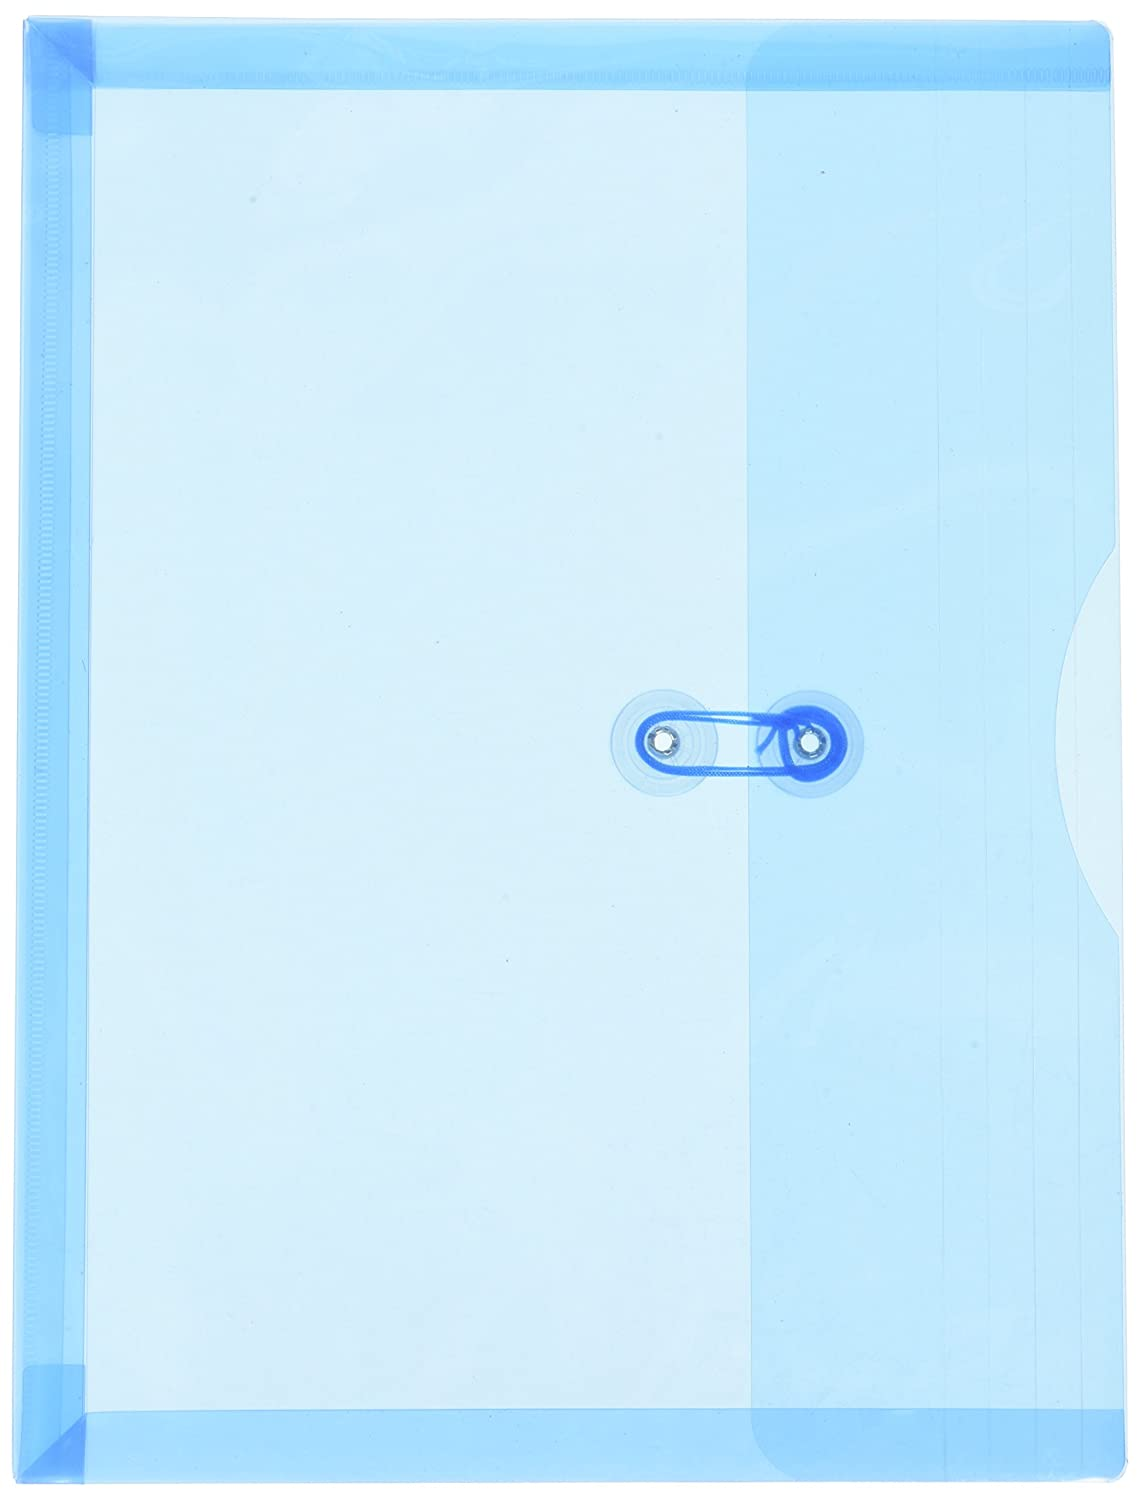 JAM PAPER Plastic Envelopes with Button & String Tie Closure - Large Booklet - 12 x 18 - Clear - 12/Pack JAM Paper & Envelope